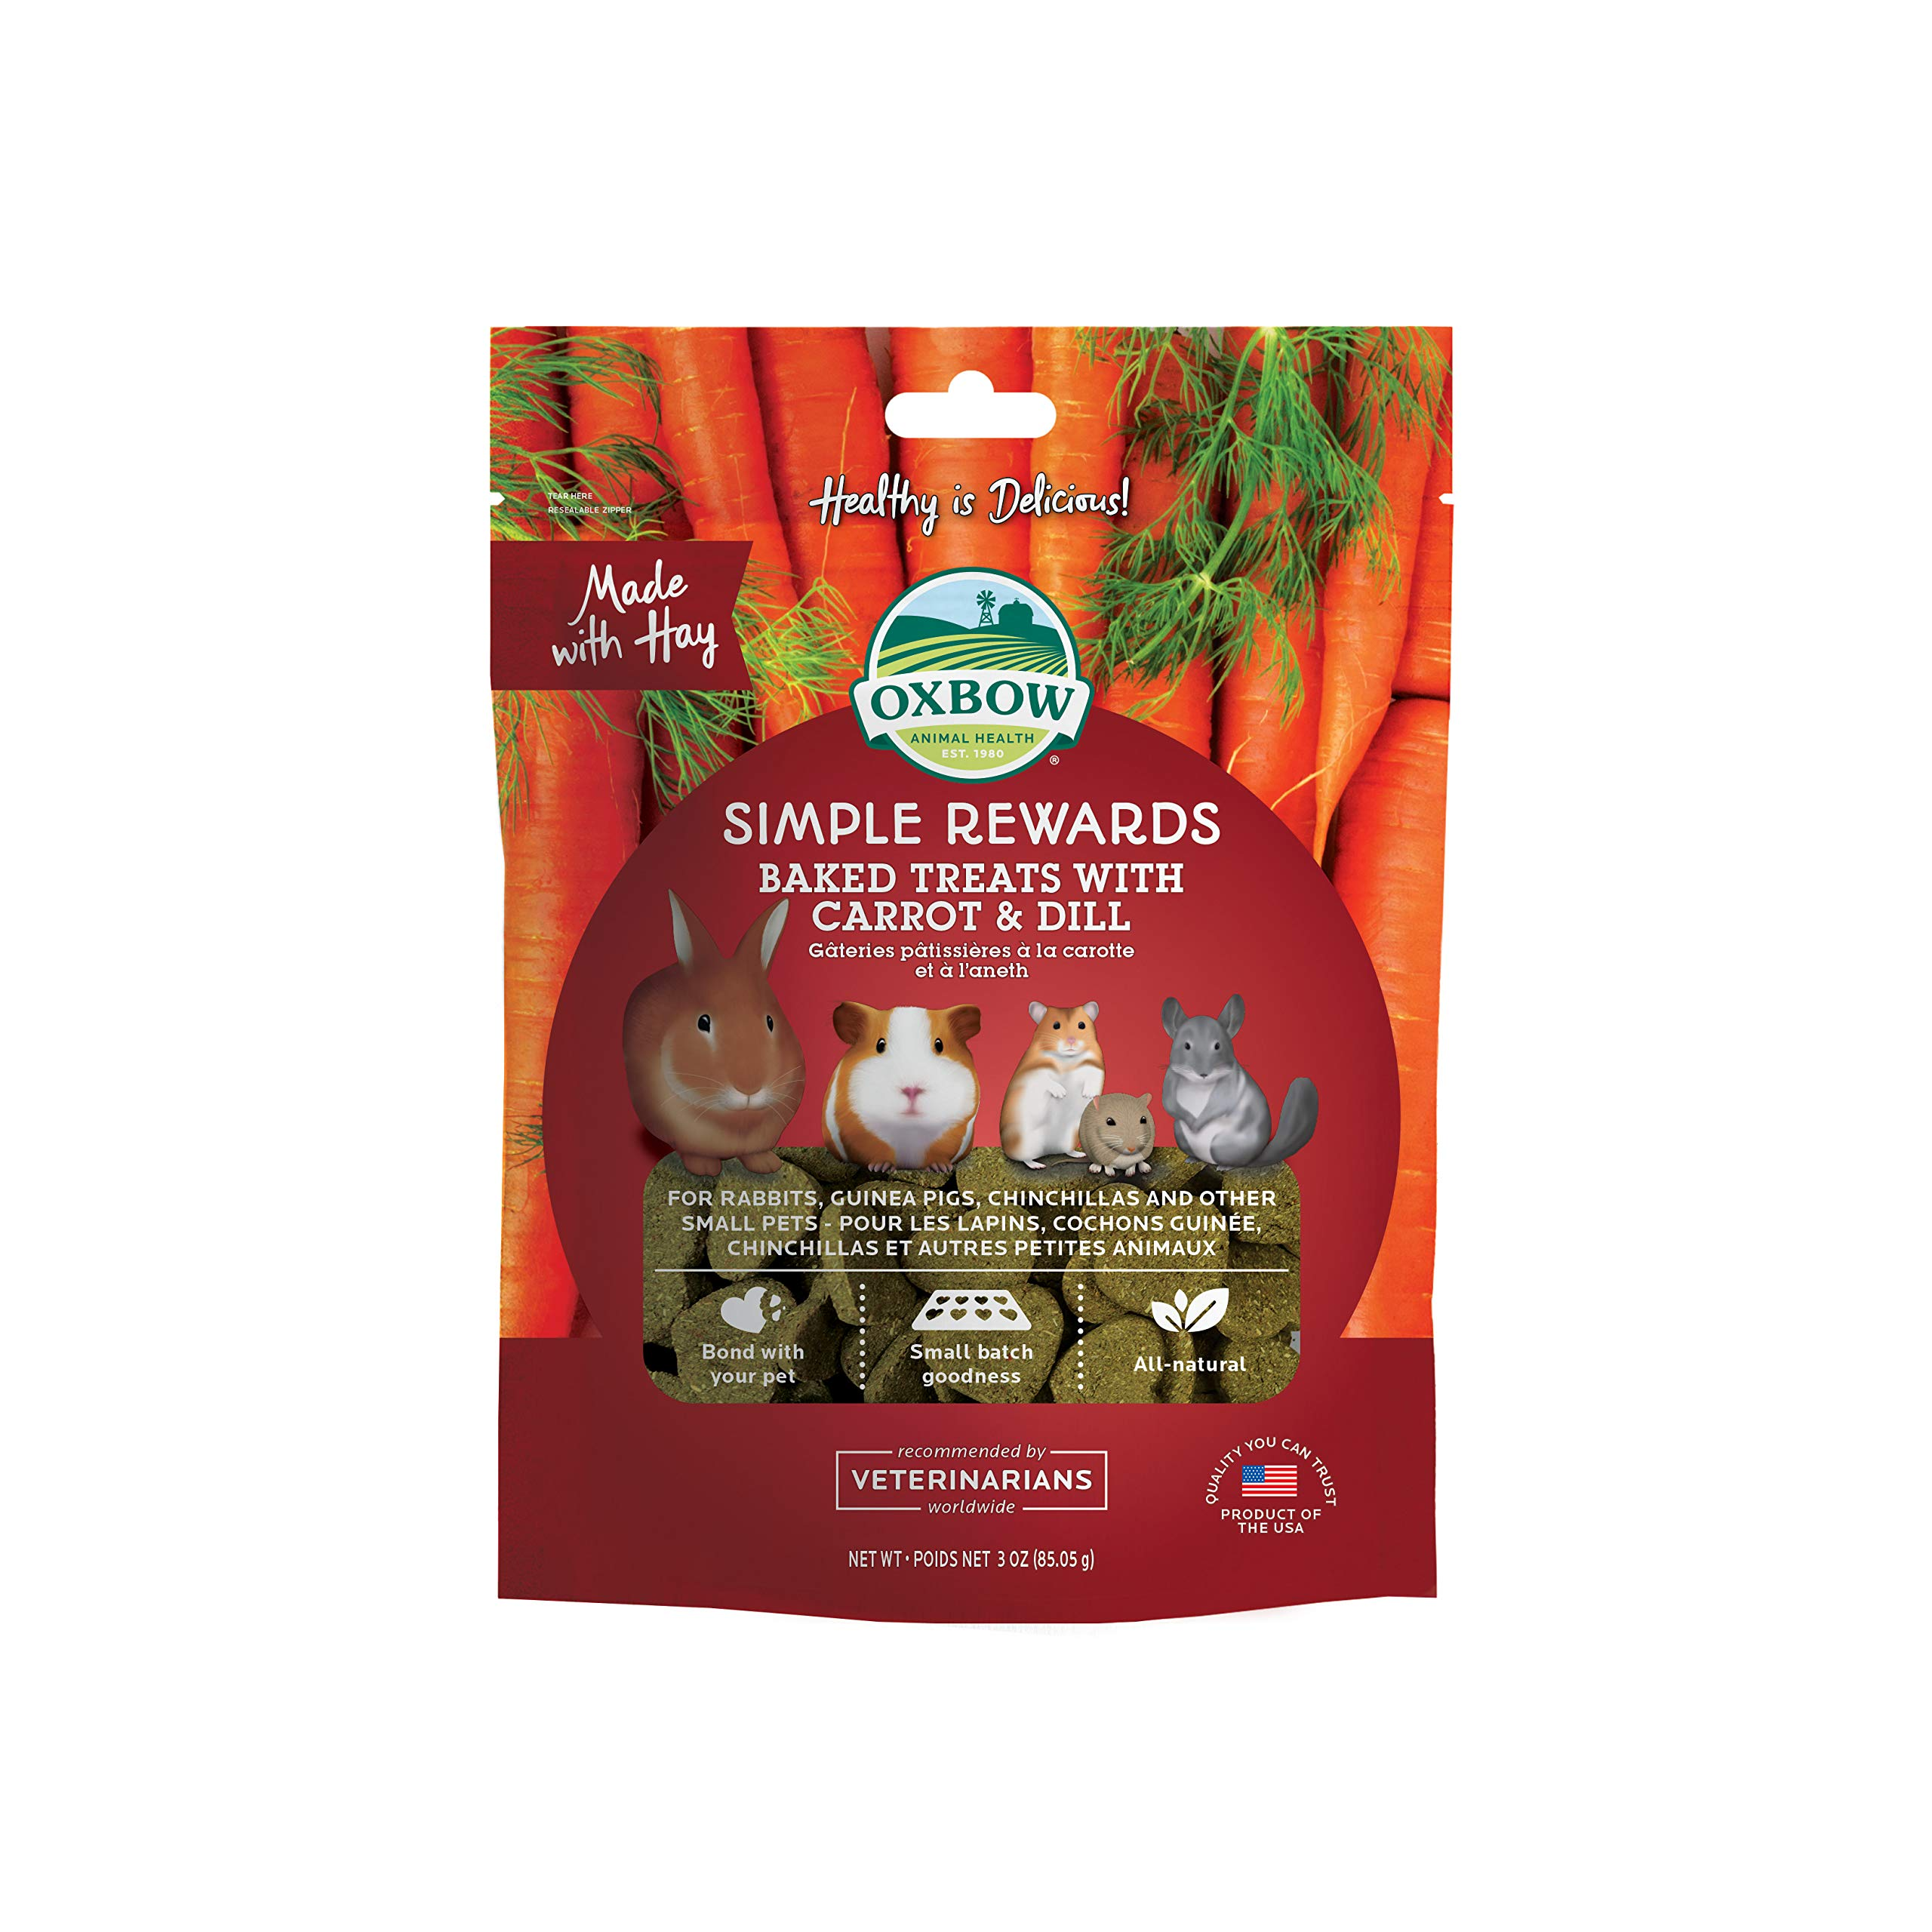 Oxbow Carrot and Dill Simple Rewards Baked Treats